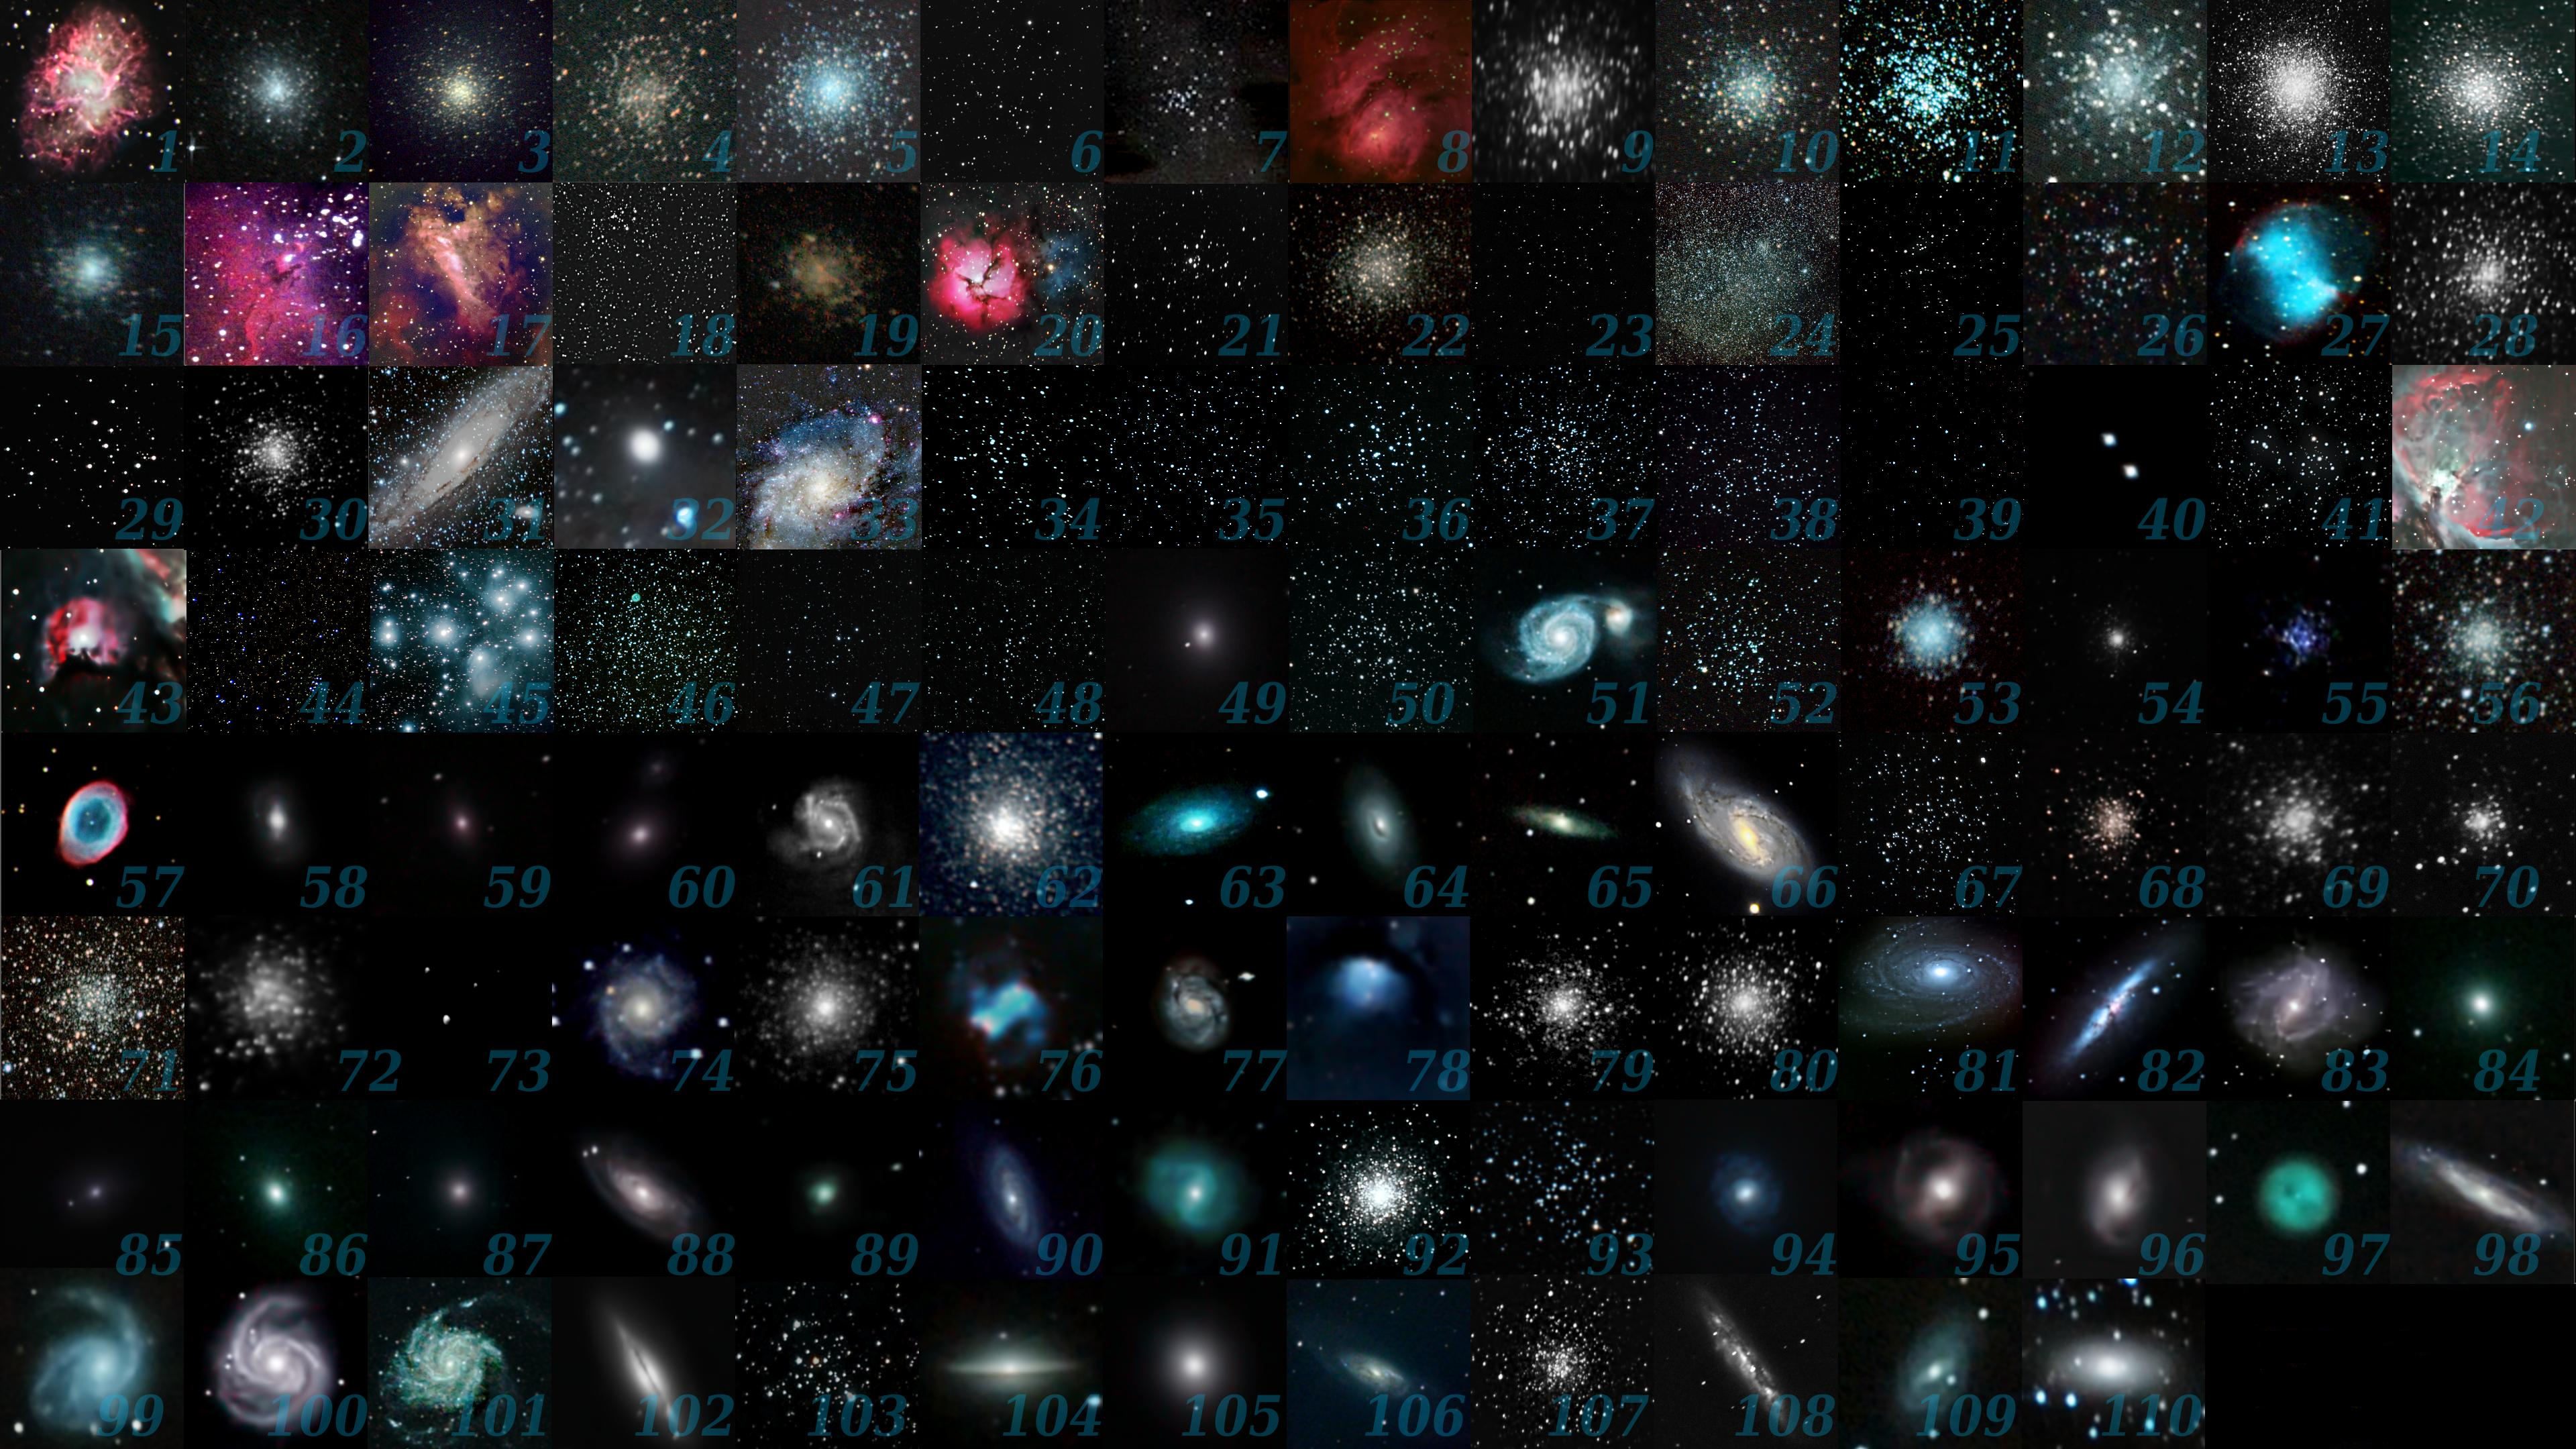 all_messier_objects_numbered.jpg